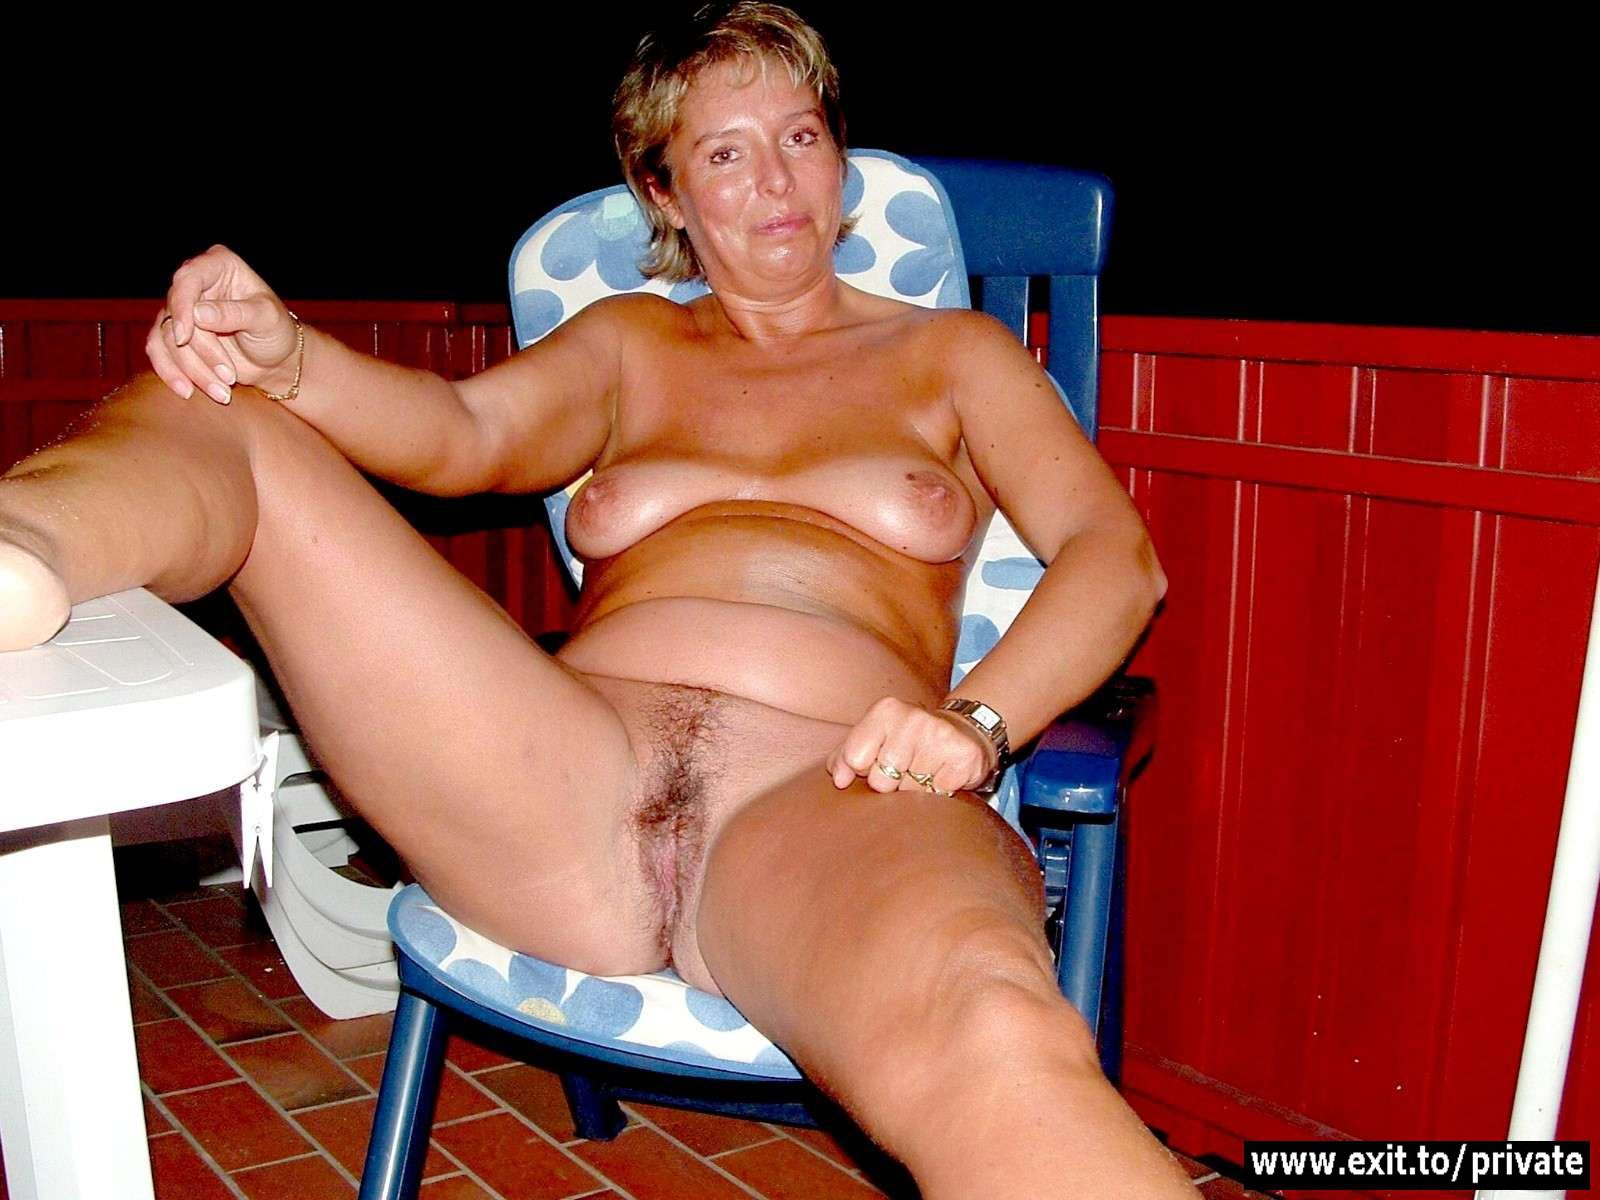 couple holiday - ... Amateur holiday Porn with mature wives - N ...